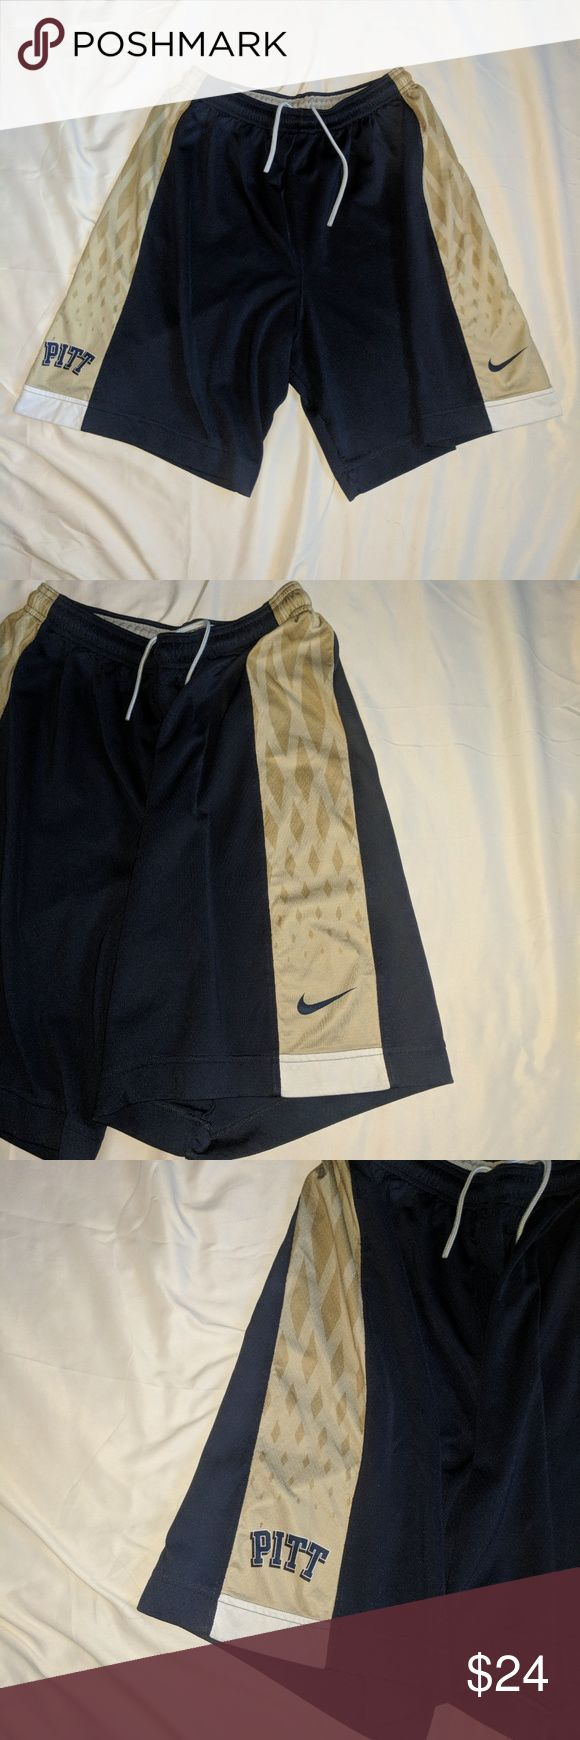 Nike PITT Panthers NCAA Basketball Jersey Sz XL Item Name: Nike Pitt Pittsburgh University Panthers NCAA Basketball Shorts  Specific Design: Blue / White / Gold / Net Side Design / PITT Spell Out on side / Nike Swoosh Side Logo / Drawstring & Elastic Waist  Item Condition: Excellent!  Size: XL  Immediate and clean shipping! Nike Shorts Athletic